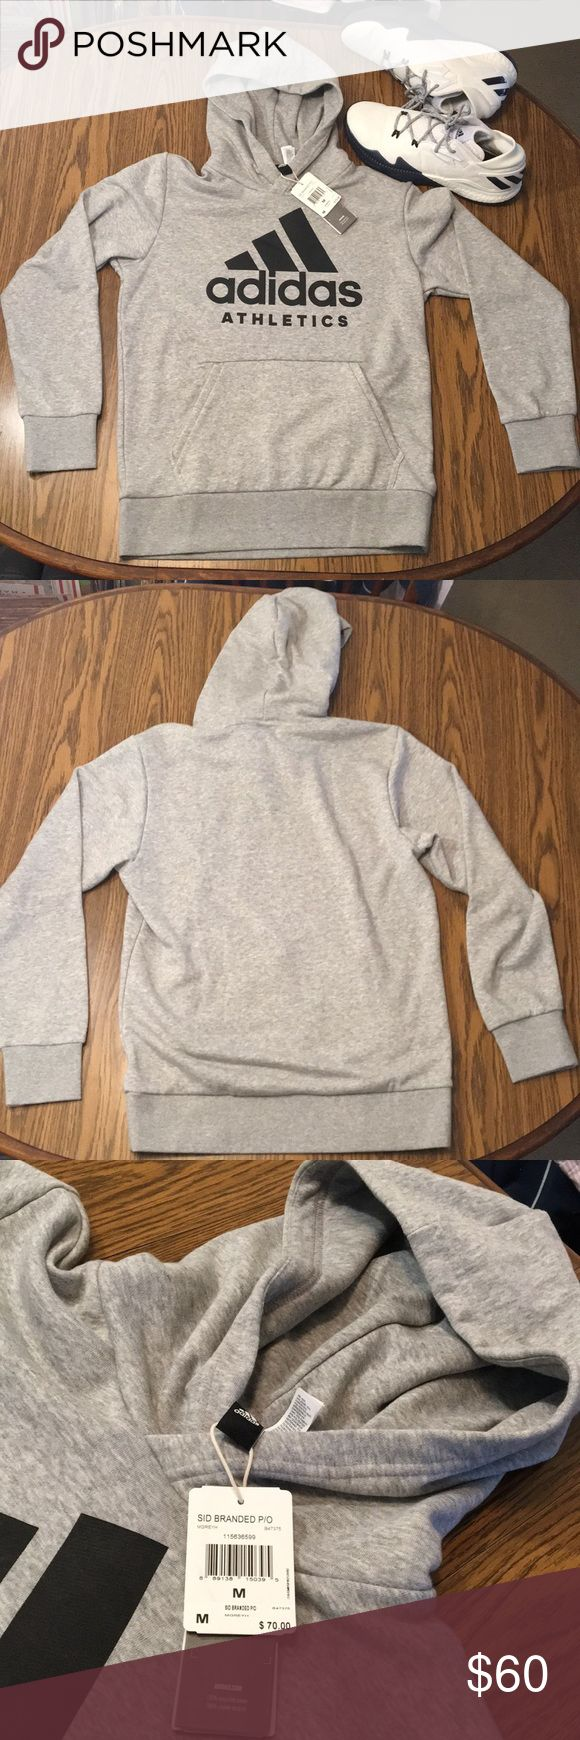 ADIDAS SID BRANDED P/O HOODIE MEN MEDIUM NWT ADIDAS SID BRANDED P/O HOODIE MEN MEDIUM NWT THIS HOODIE FEATURES A POCKET ON THE LEFT INSIDE OF HANDWARMER WITH ZIPPER Measurements 27 inches from collar down to waist  22 inches from pit to pit Any questions please feel free to ask adidas Shirts Sweatshirts & Hoodies